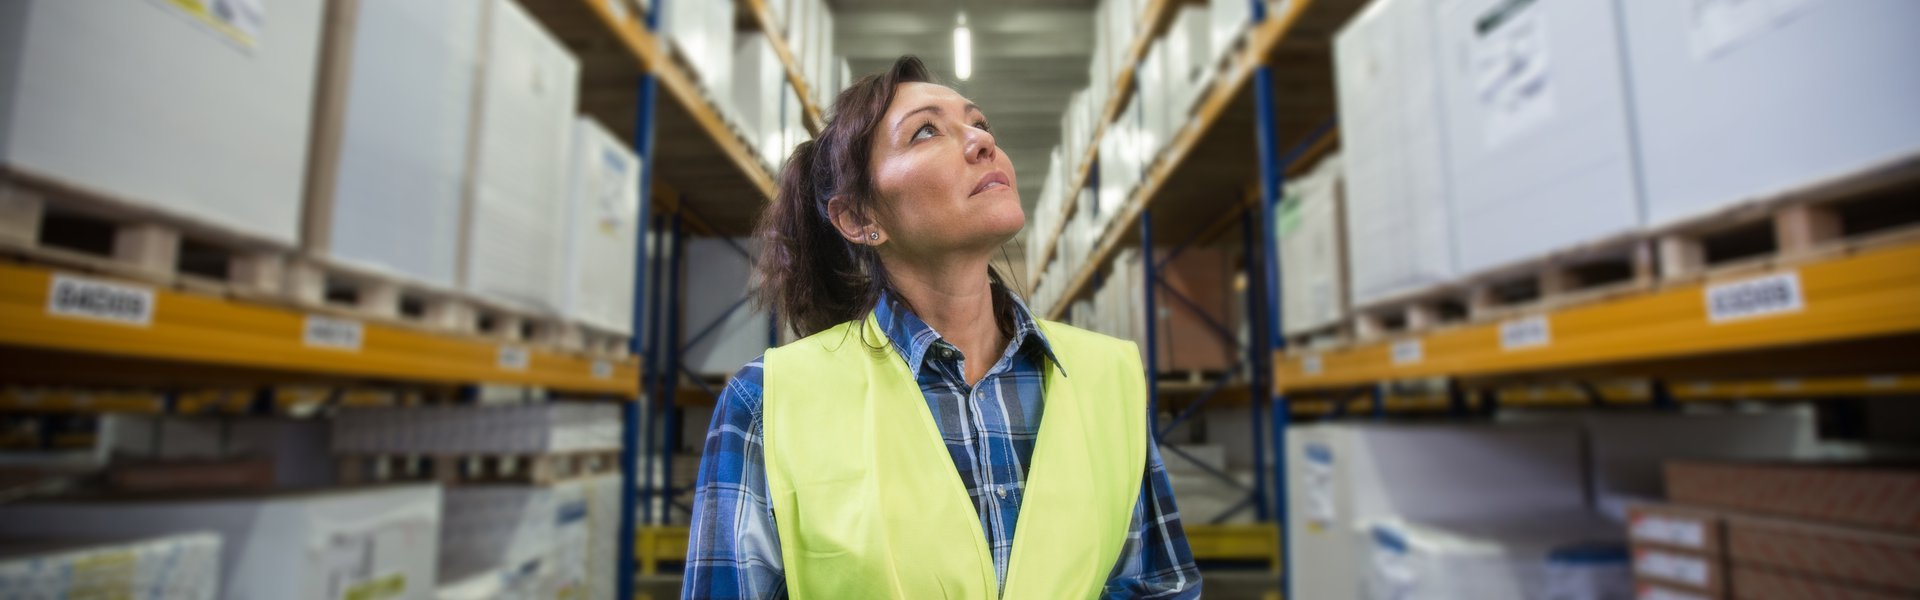 Puzzled woman in warehouse working with hand scanner and looking for one particular item. First in first out, Last in last out, team working together concept photo. p738